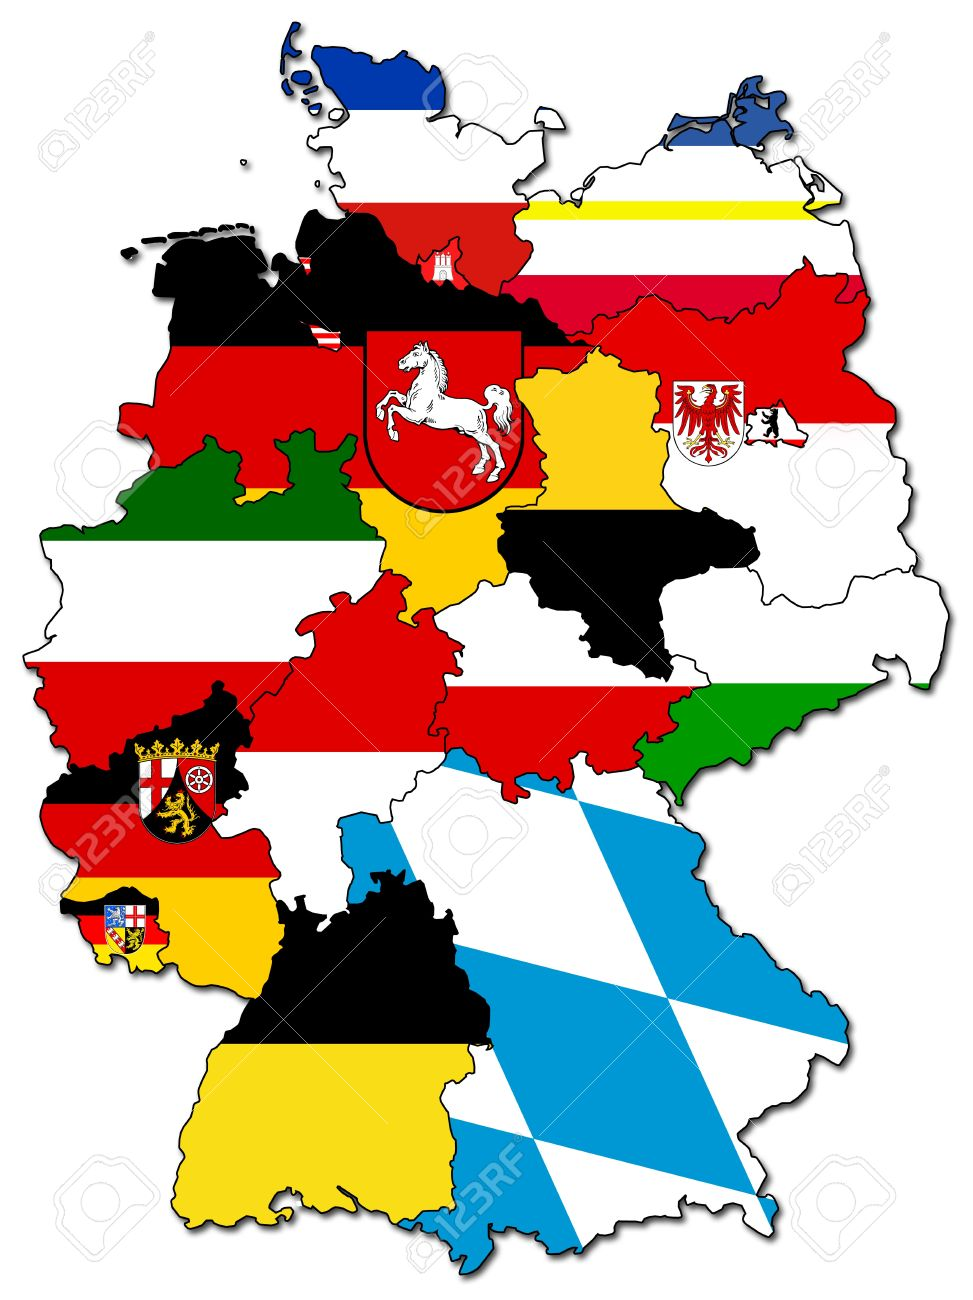 Old Administration Map Of German Provinces States Stock Photo - Germany map cartoon